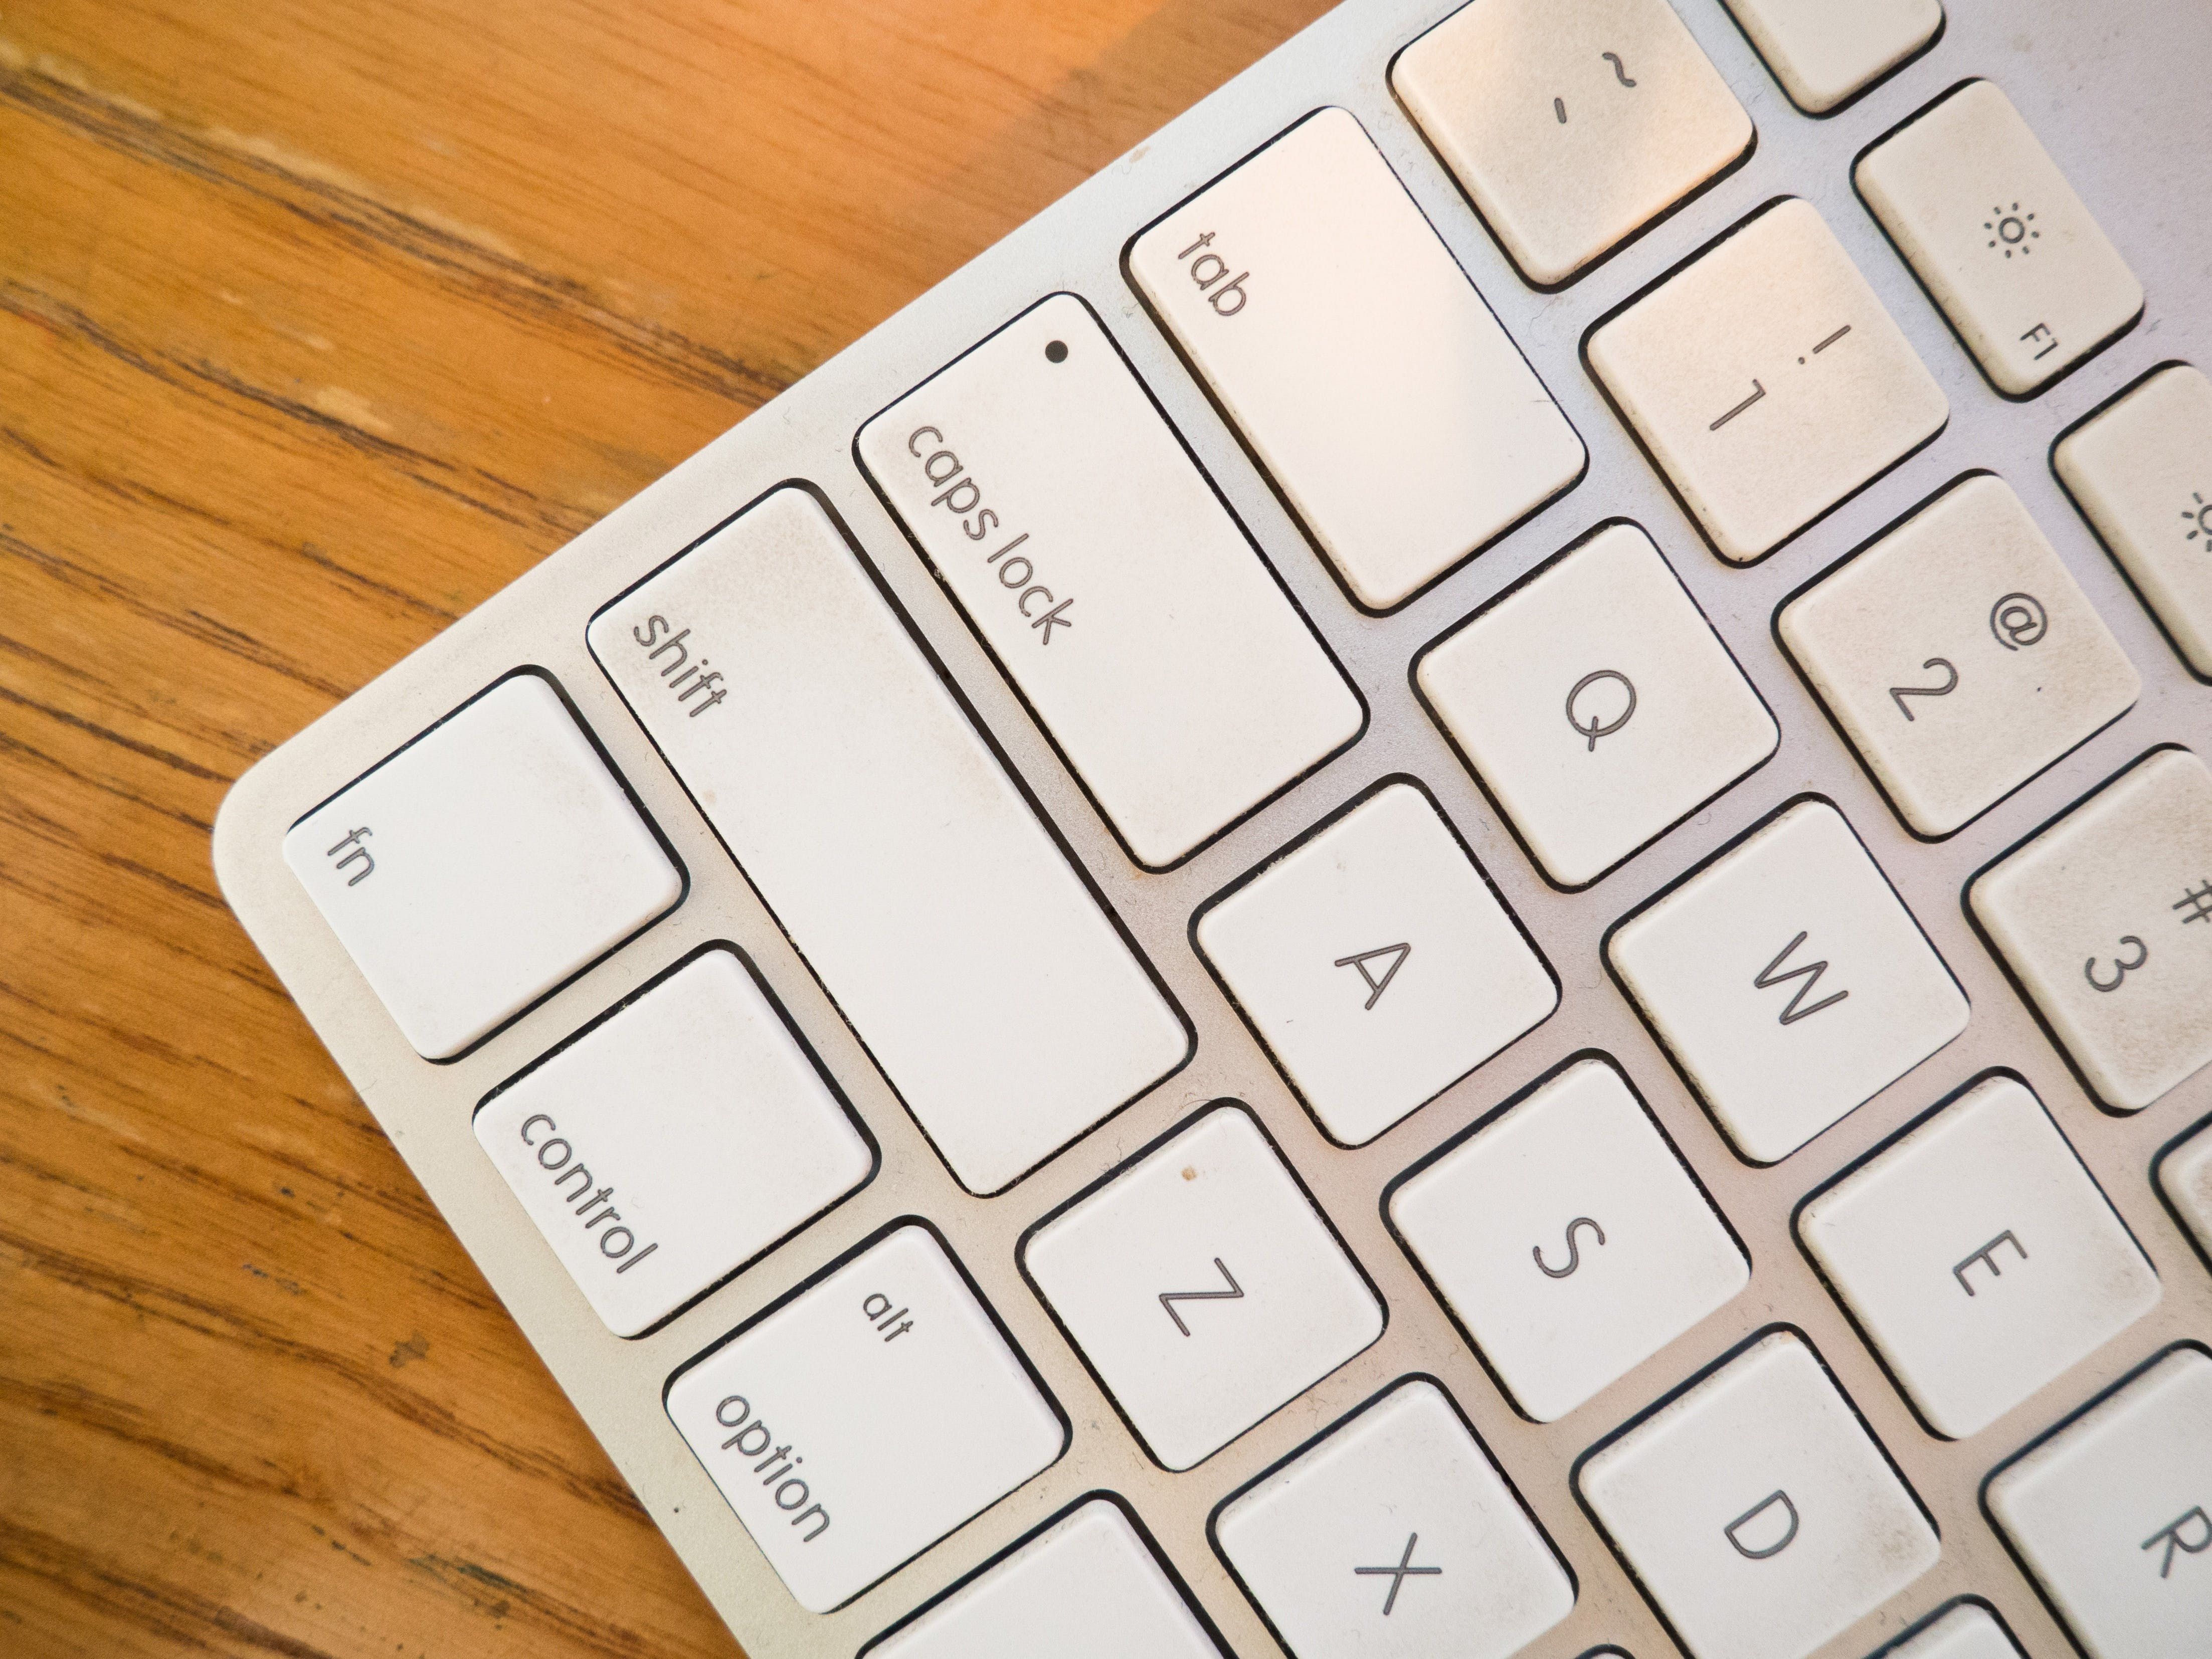 Free stock photo of keyboard, letters, close-up, mac